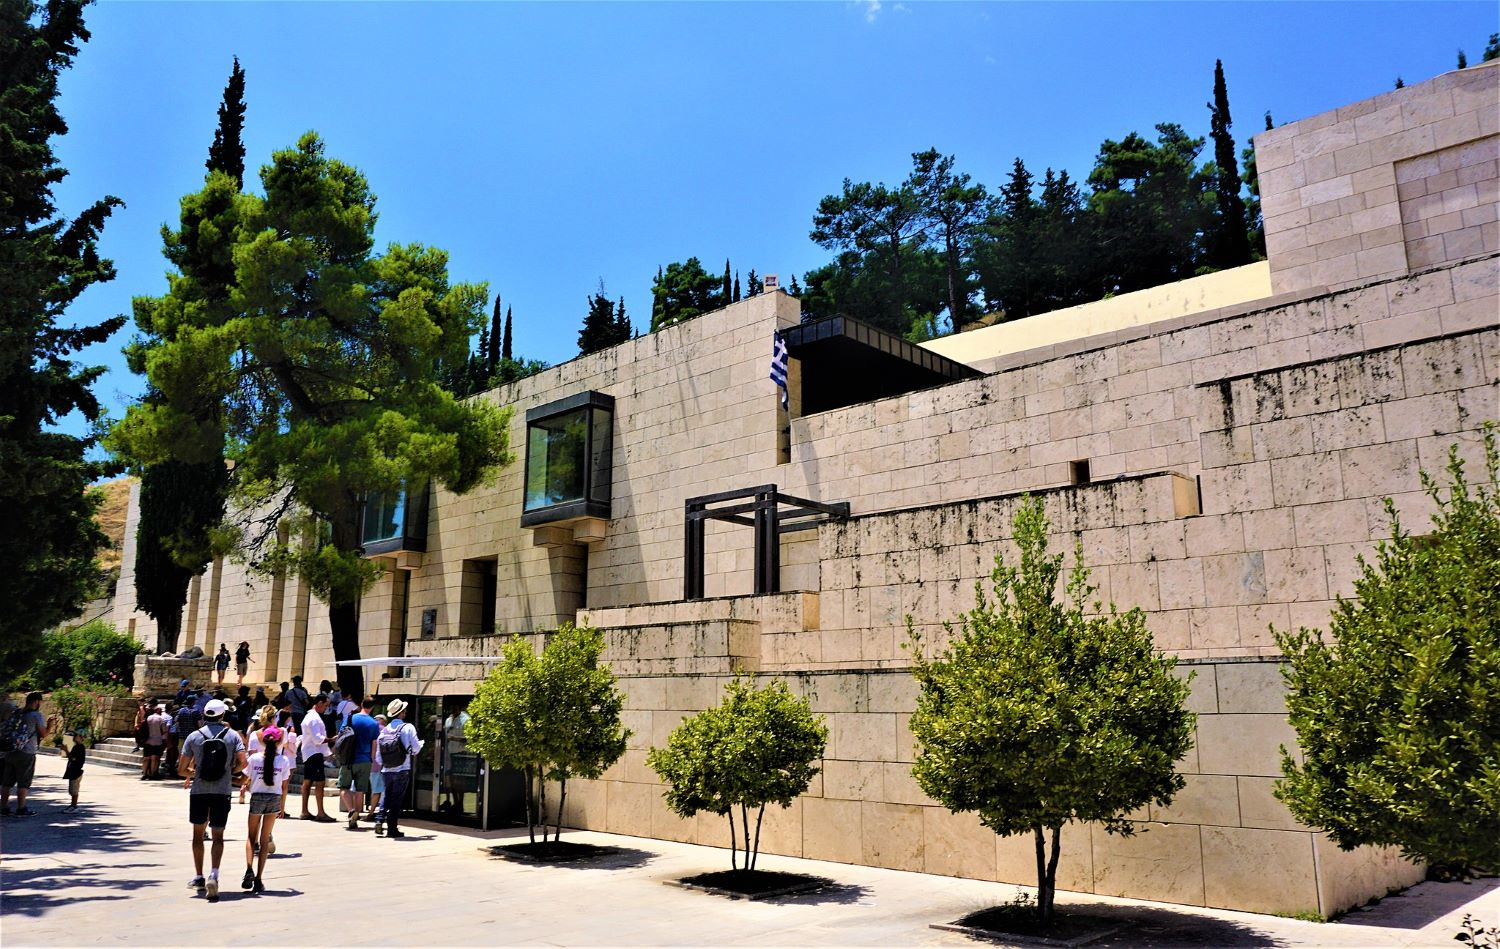 The archaeological museum of Delphi, visited by 700,000 people per year. Photo source: Joyofmuseums (CC BY-SA 4.0)